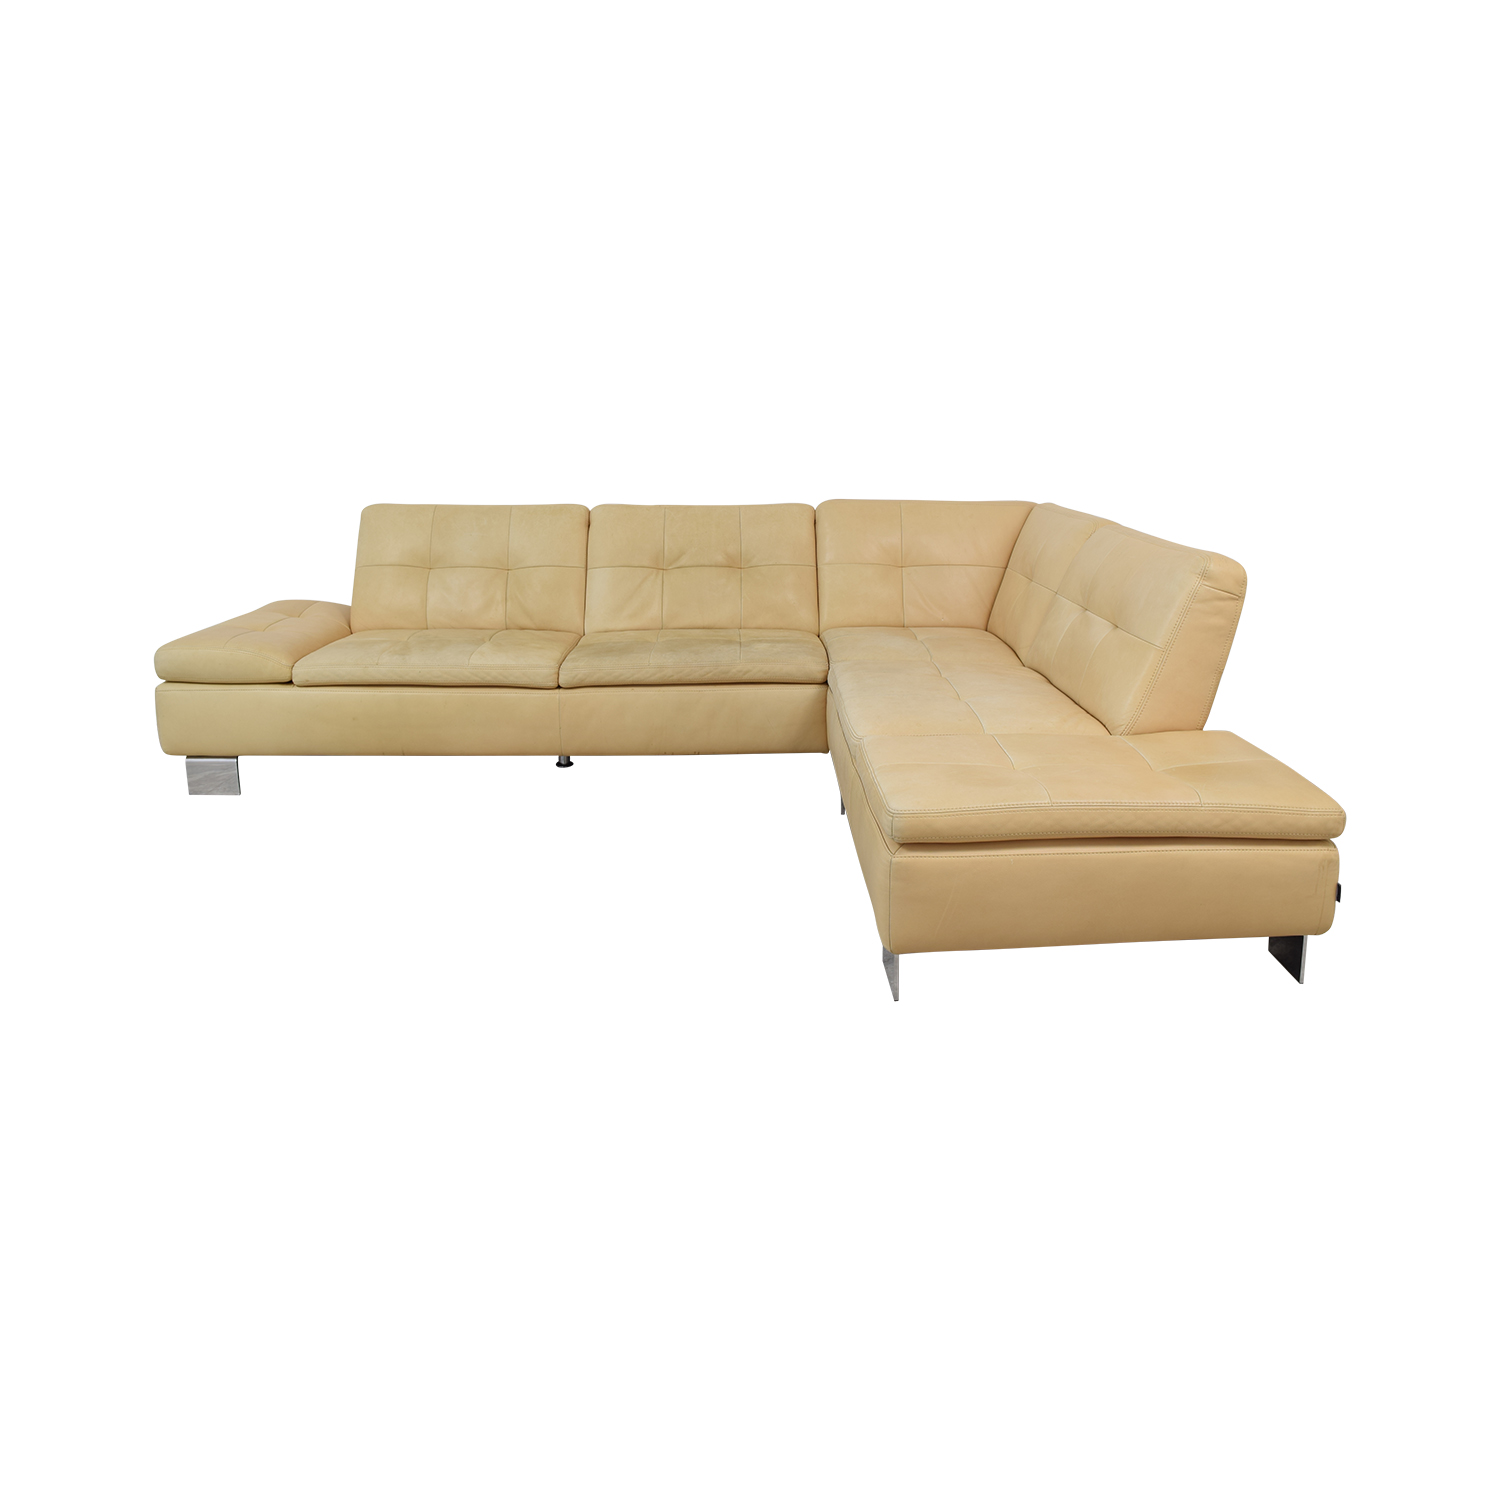 shop W. Schillig Beige Tufted Sofa L-Shaped Sectional W. Schillig Sectionals